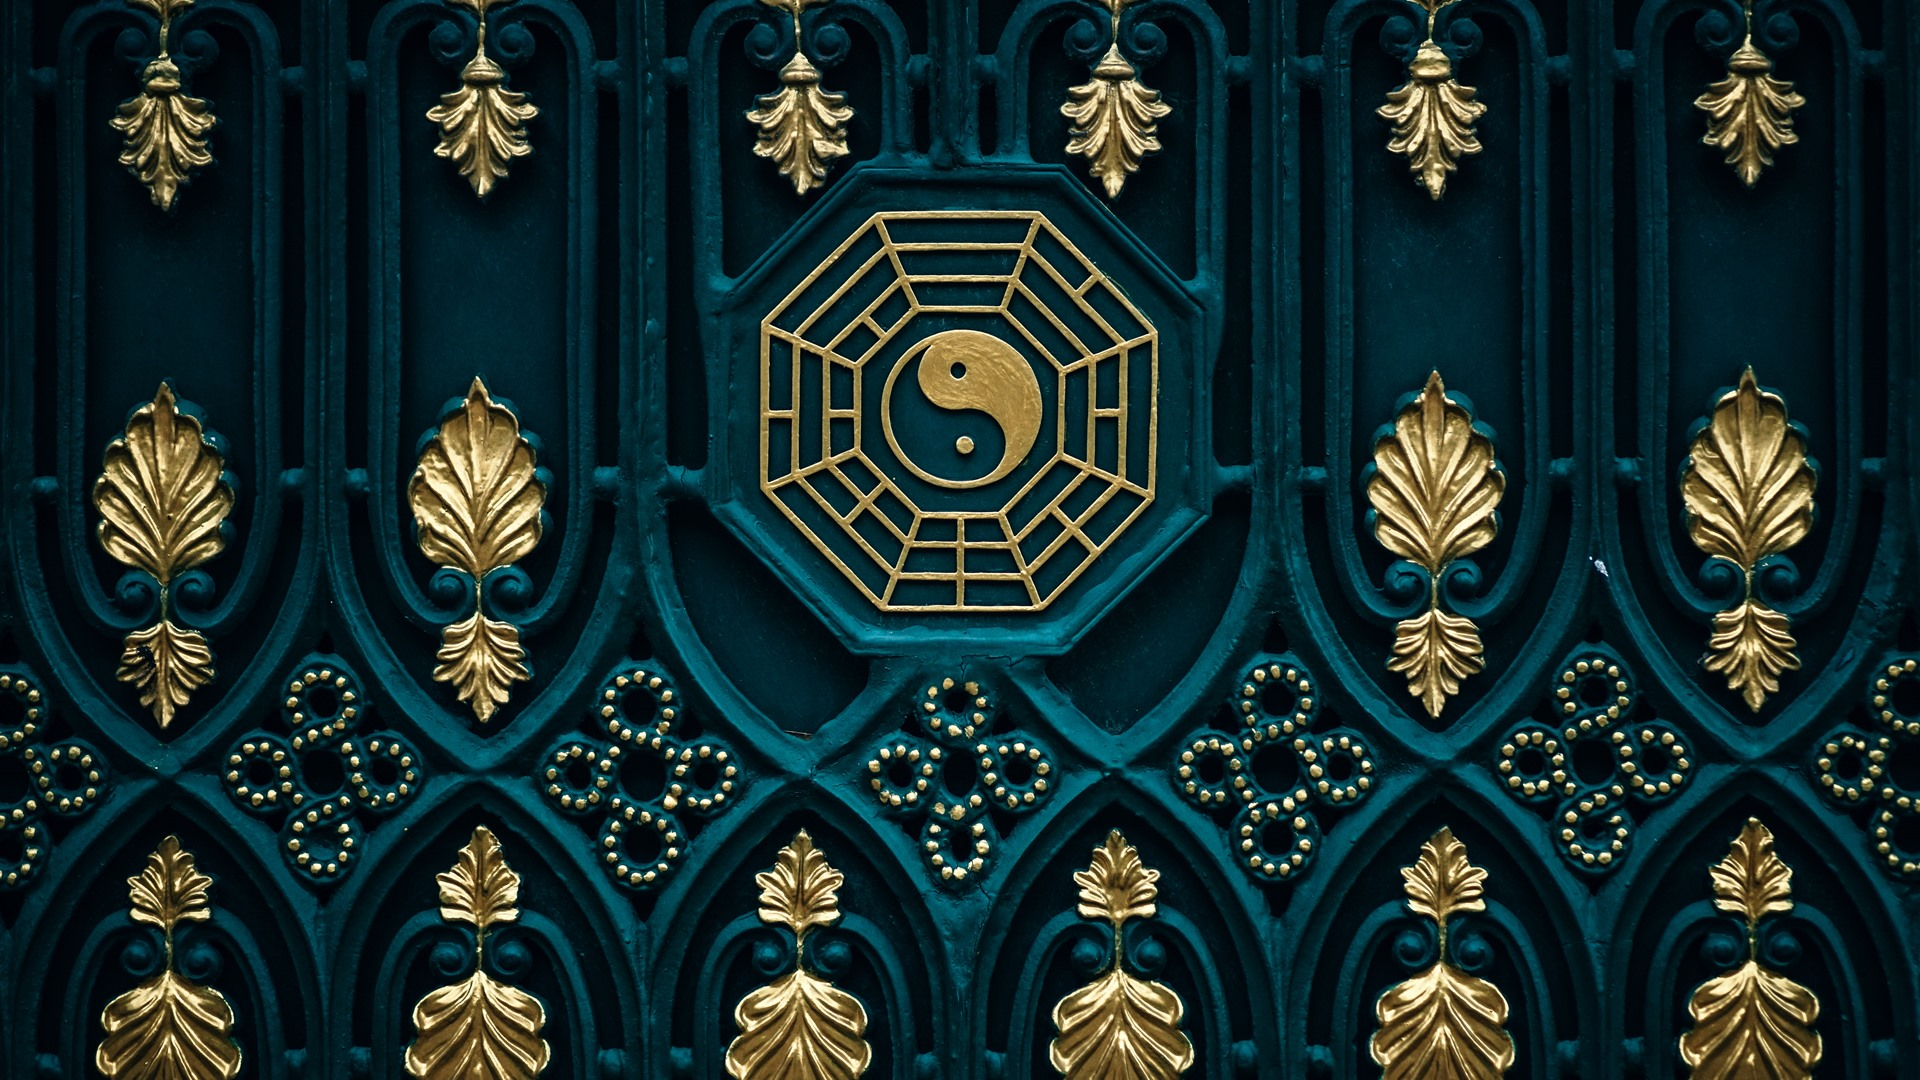 Wallpaper Bagua map yin yang door 5120x2880 UHD 5K Picture Image 1920x1080